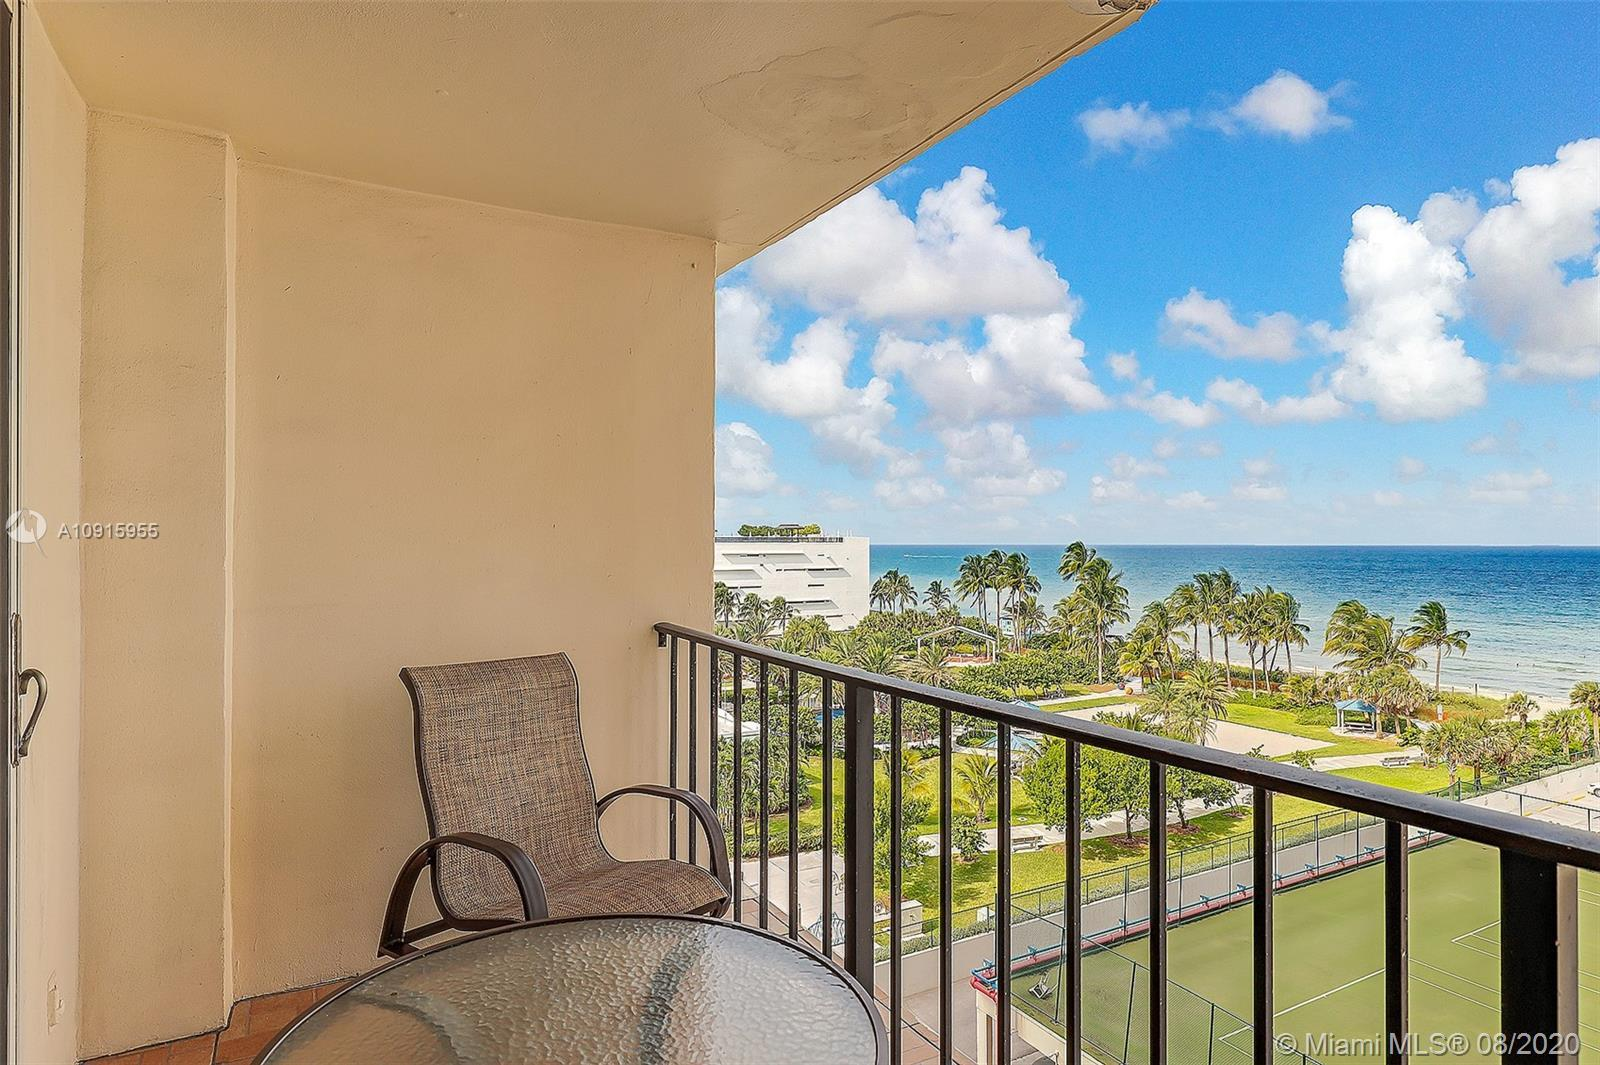 Direct Ocean views from every room in this large updated unit! Split bedroom floor plan with hurrica